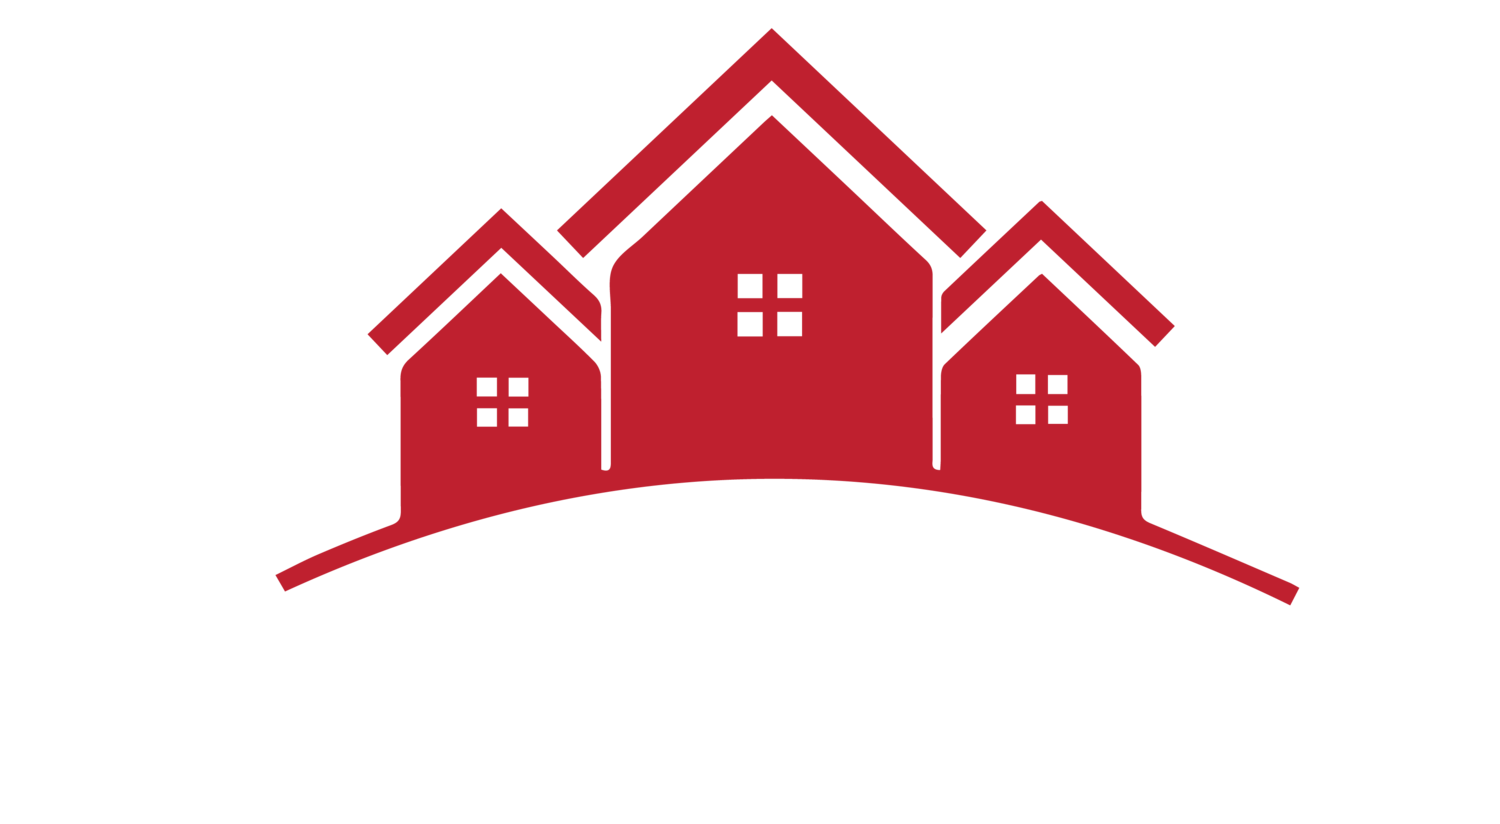 a roofing. Handyman clipart roof work